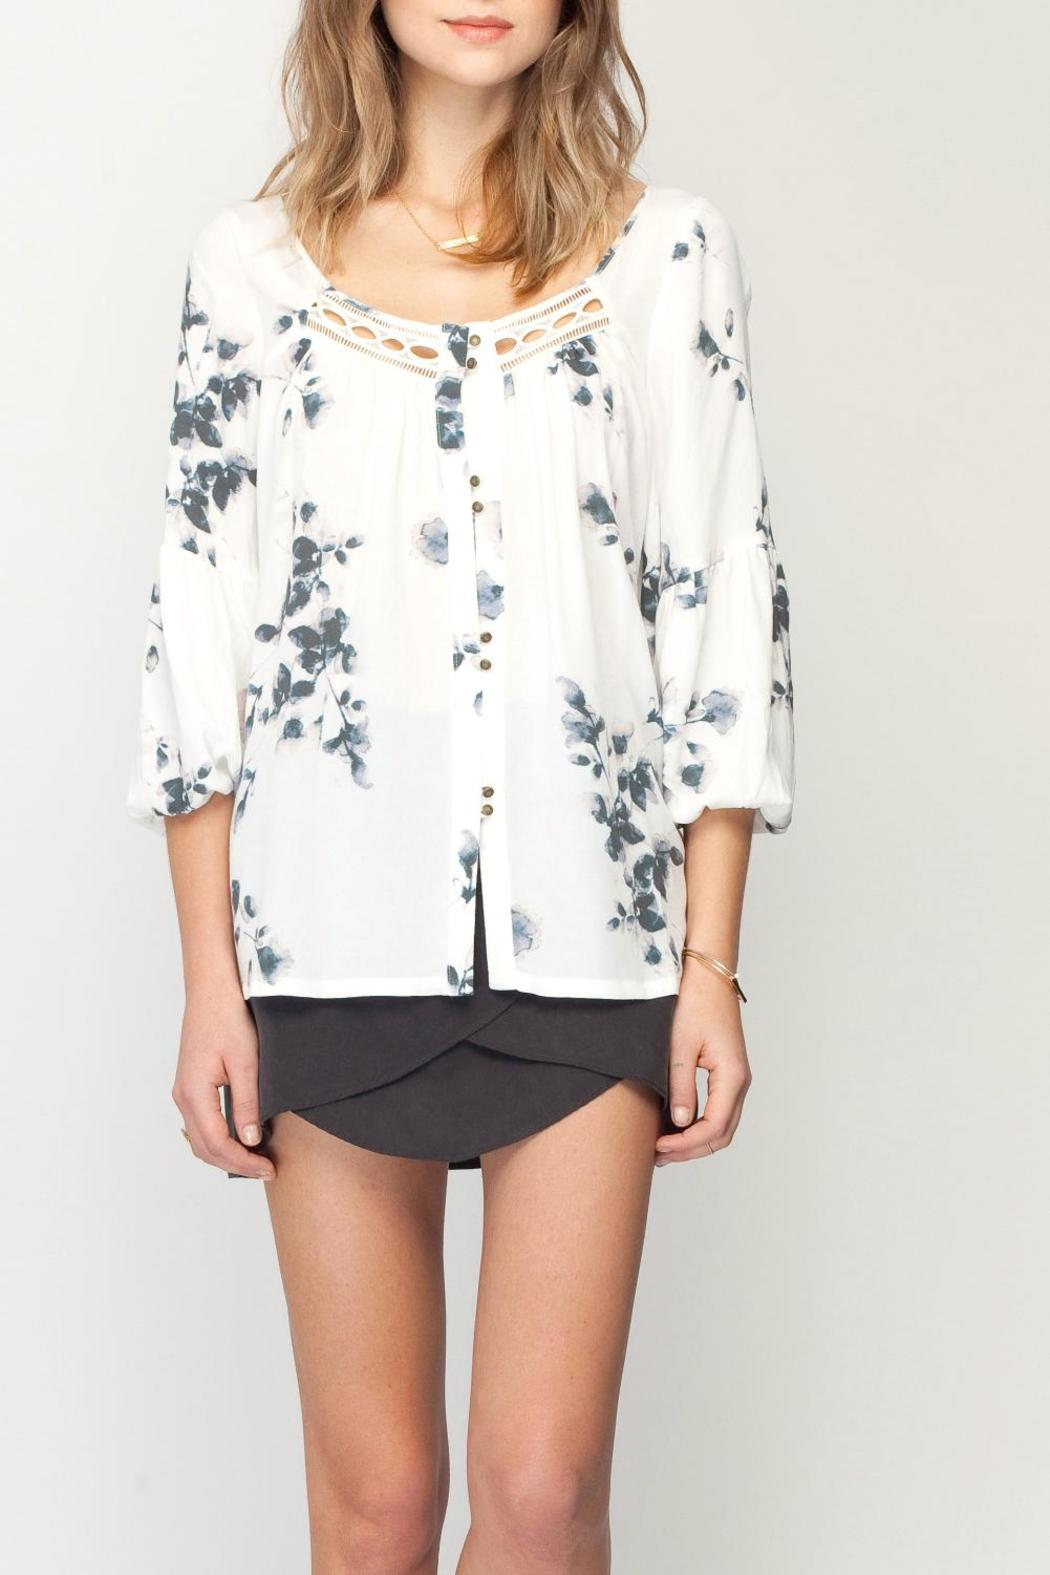 Gentle Fawn Botanical Print Top - Main Image